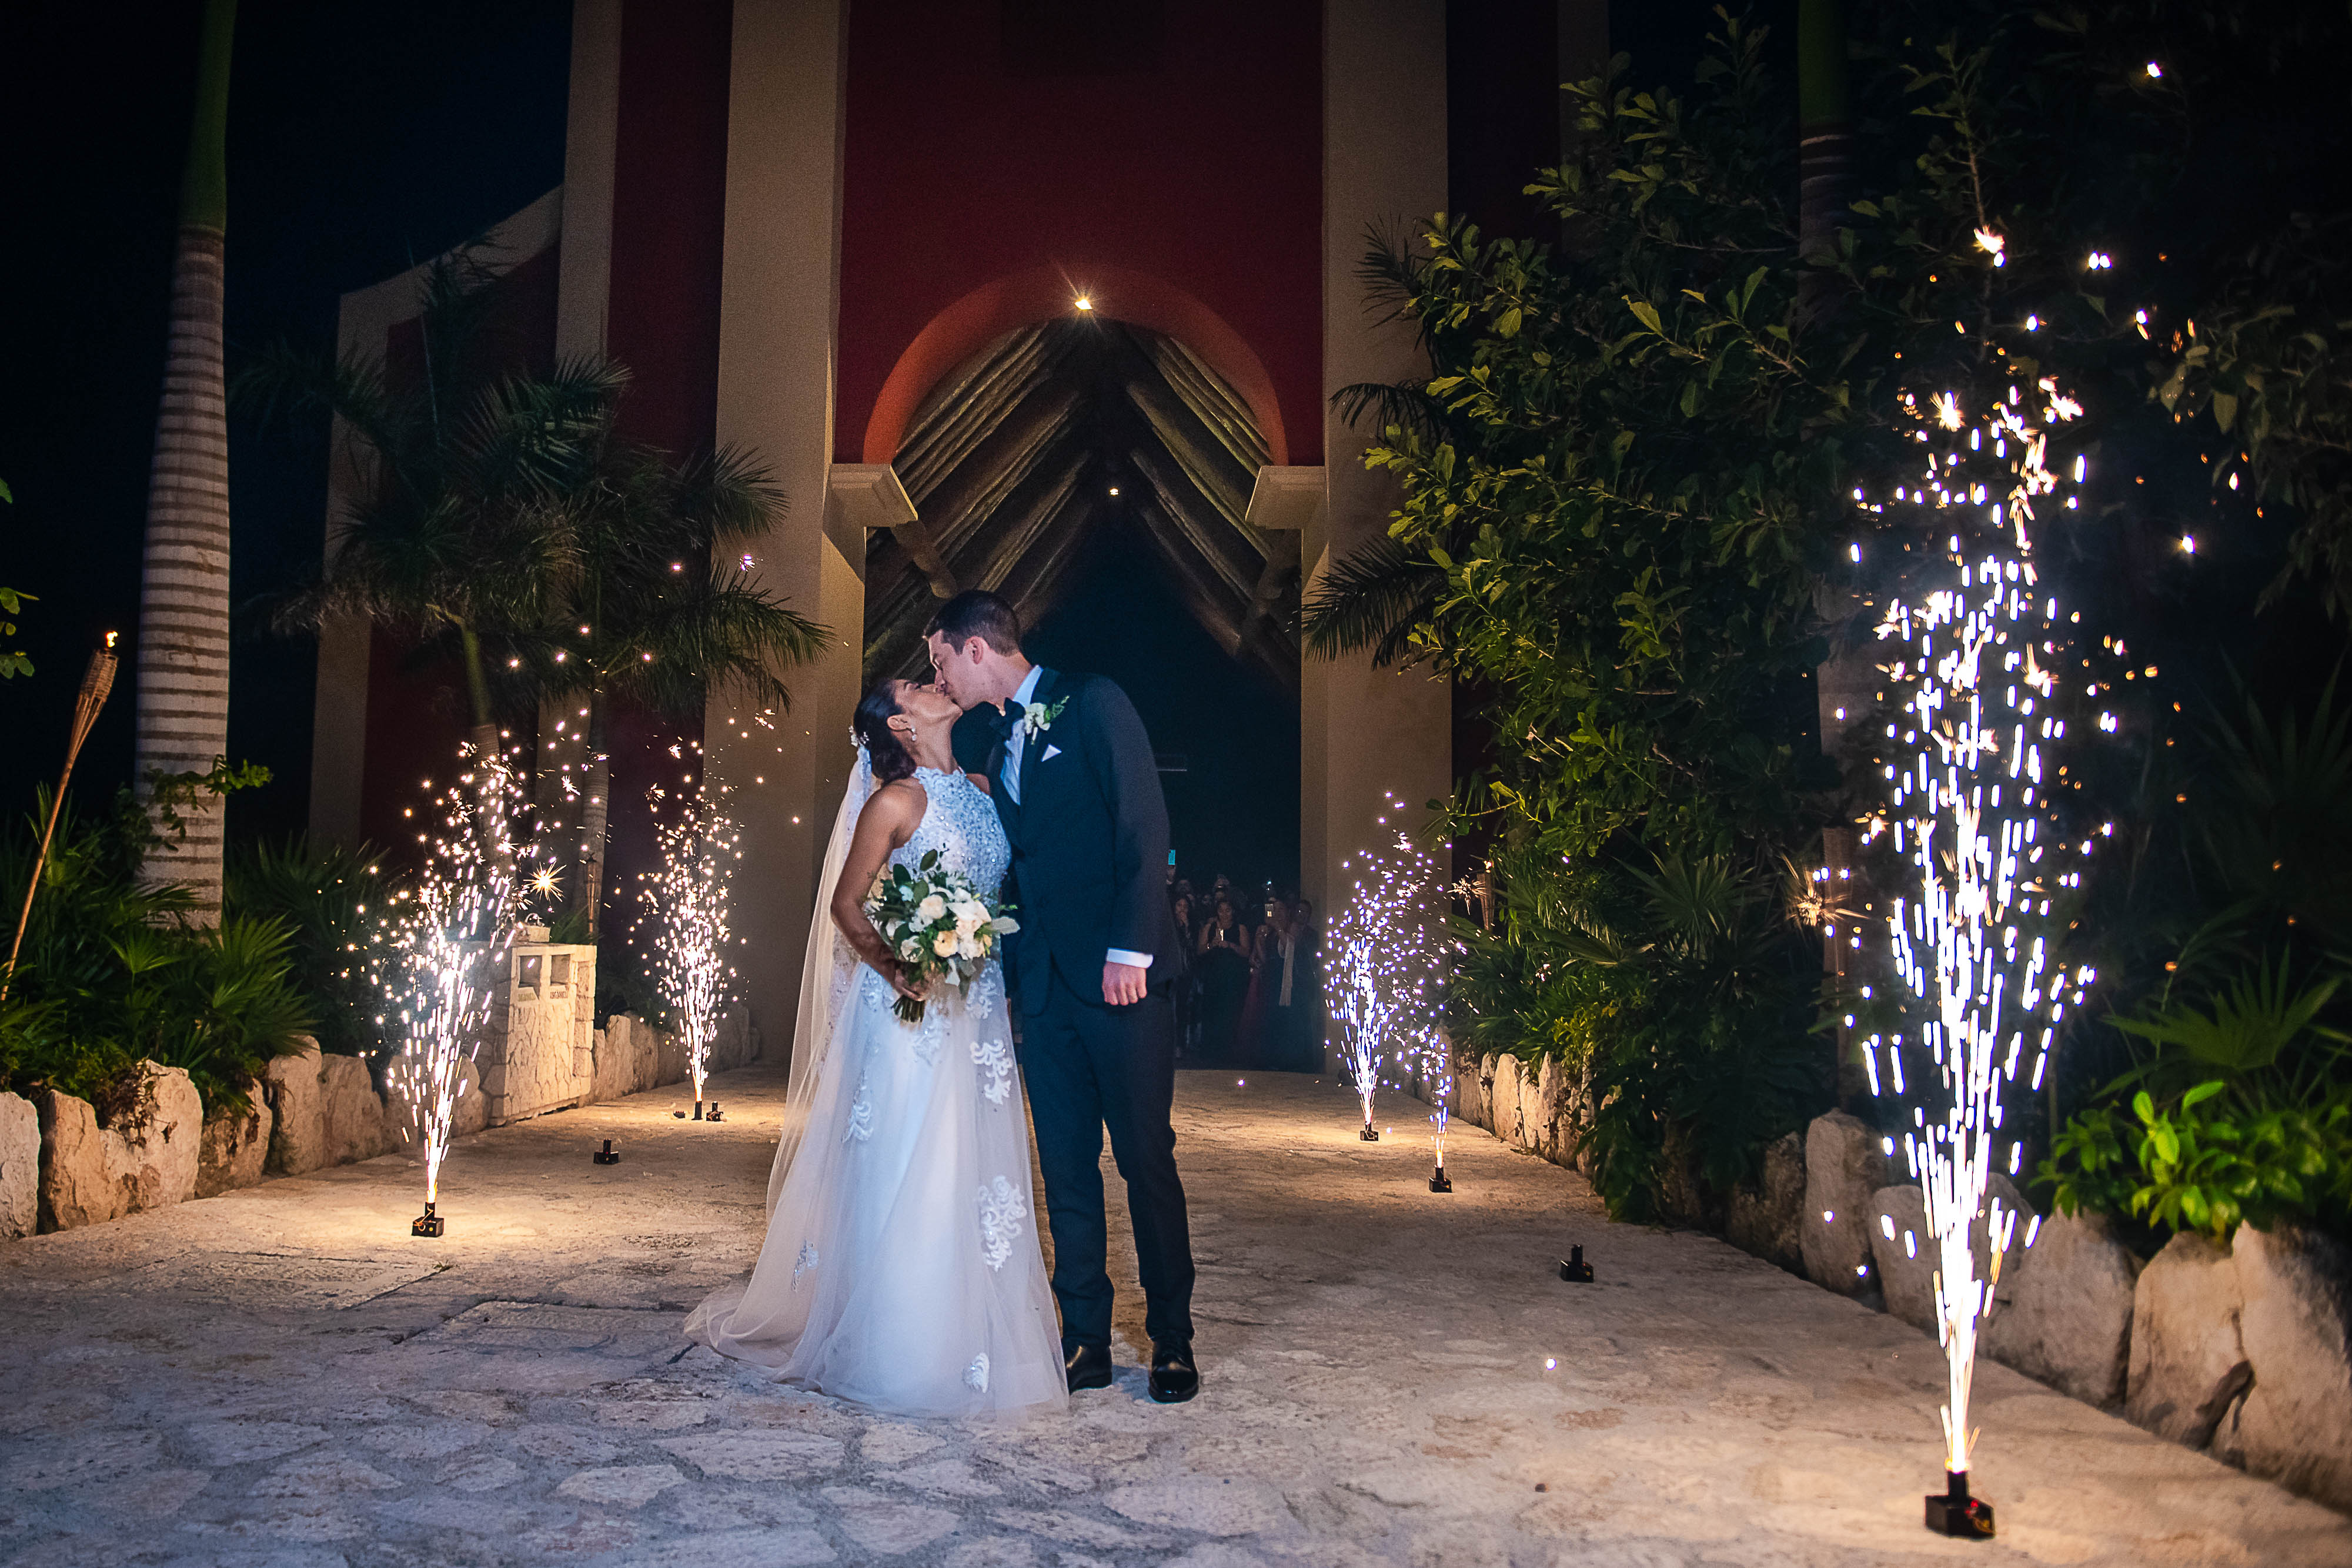 sparkles at the end of the ceremony celebrating their marriage in the xoximilco chapel in cancun